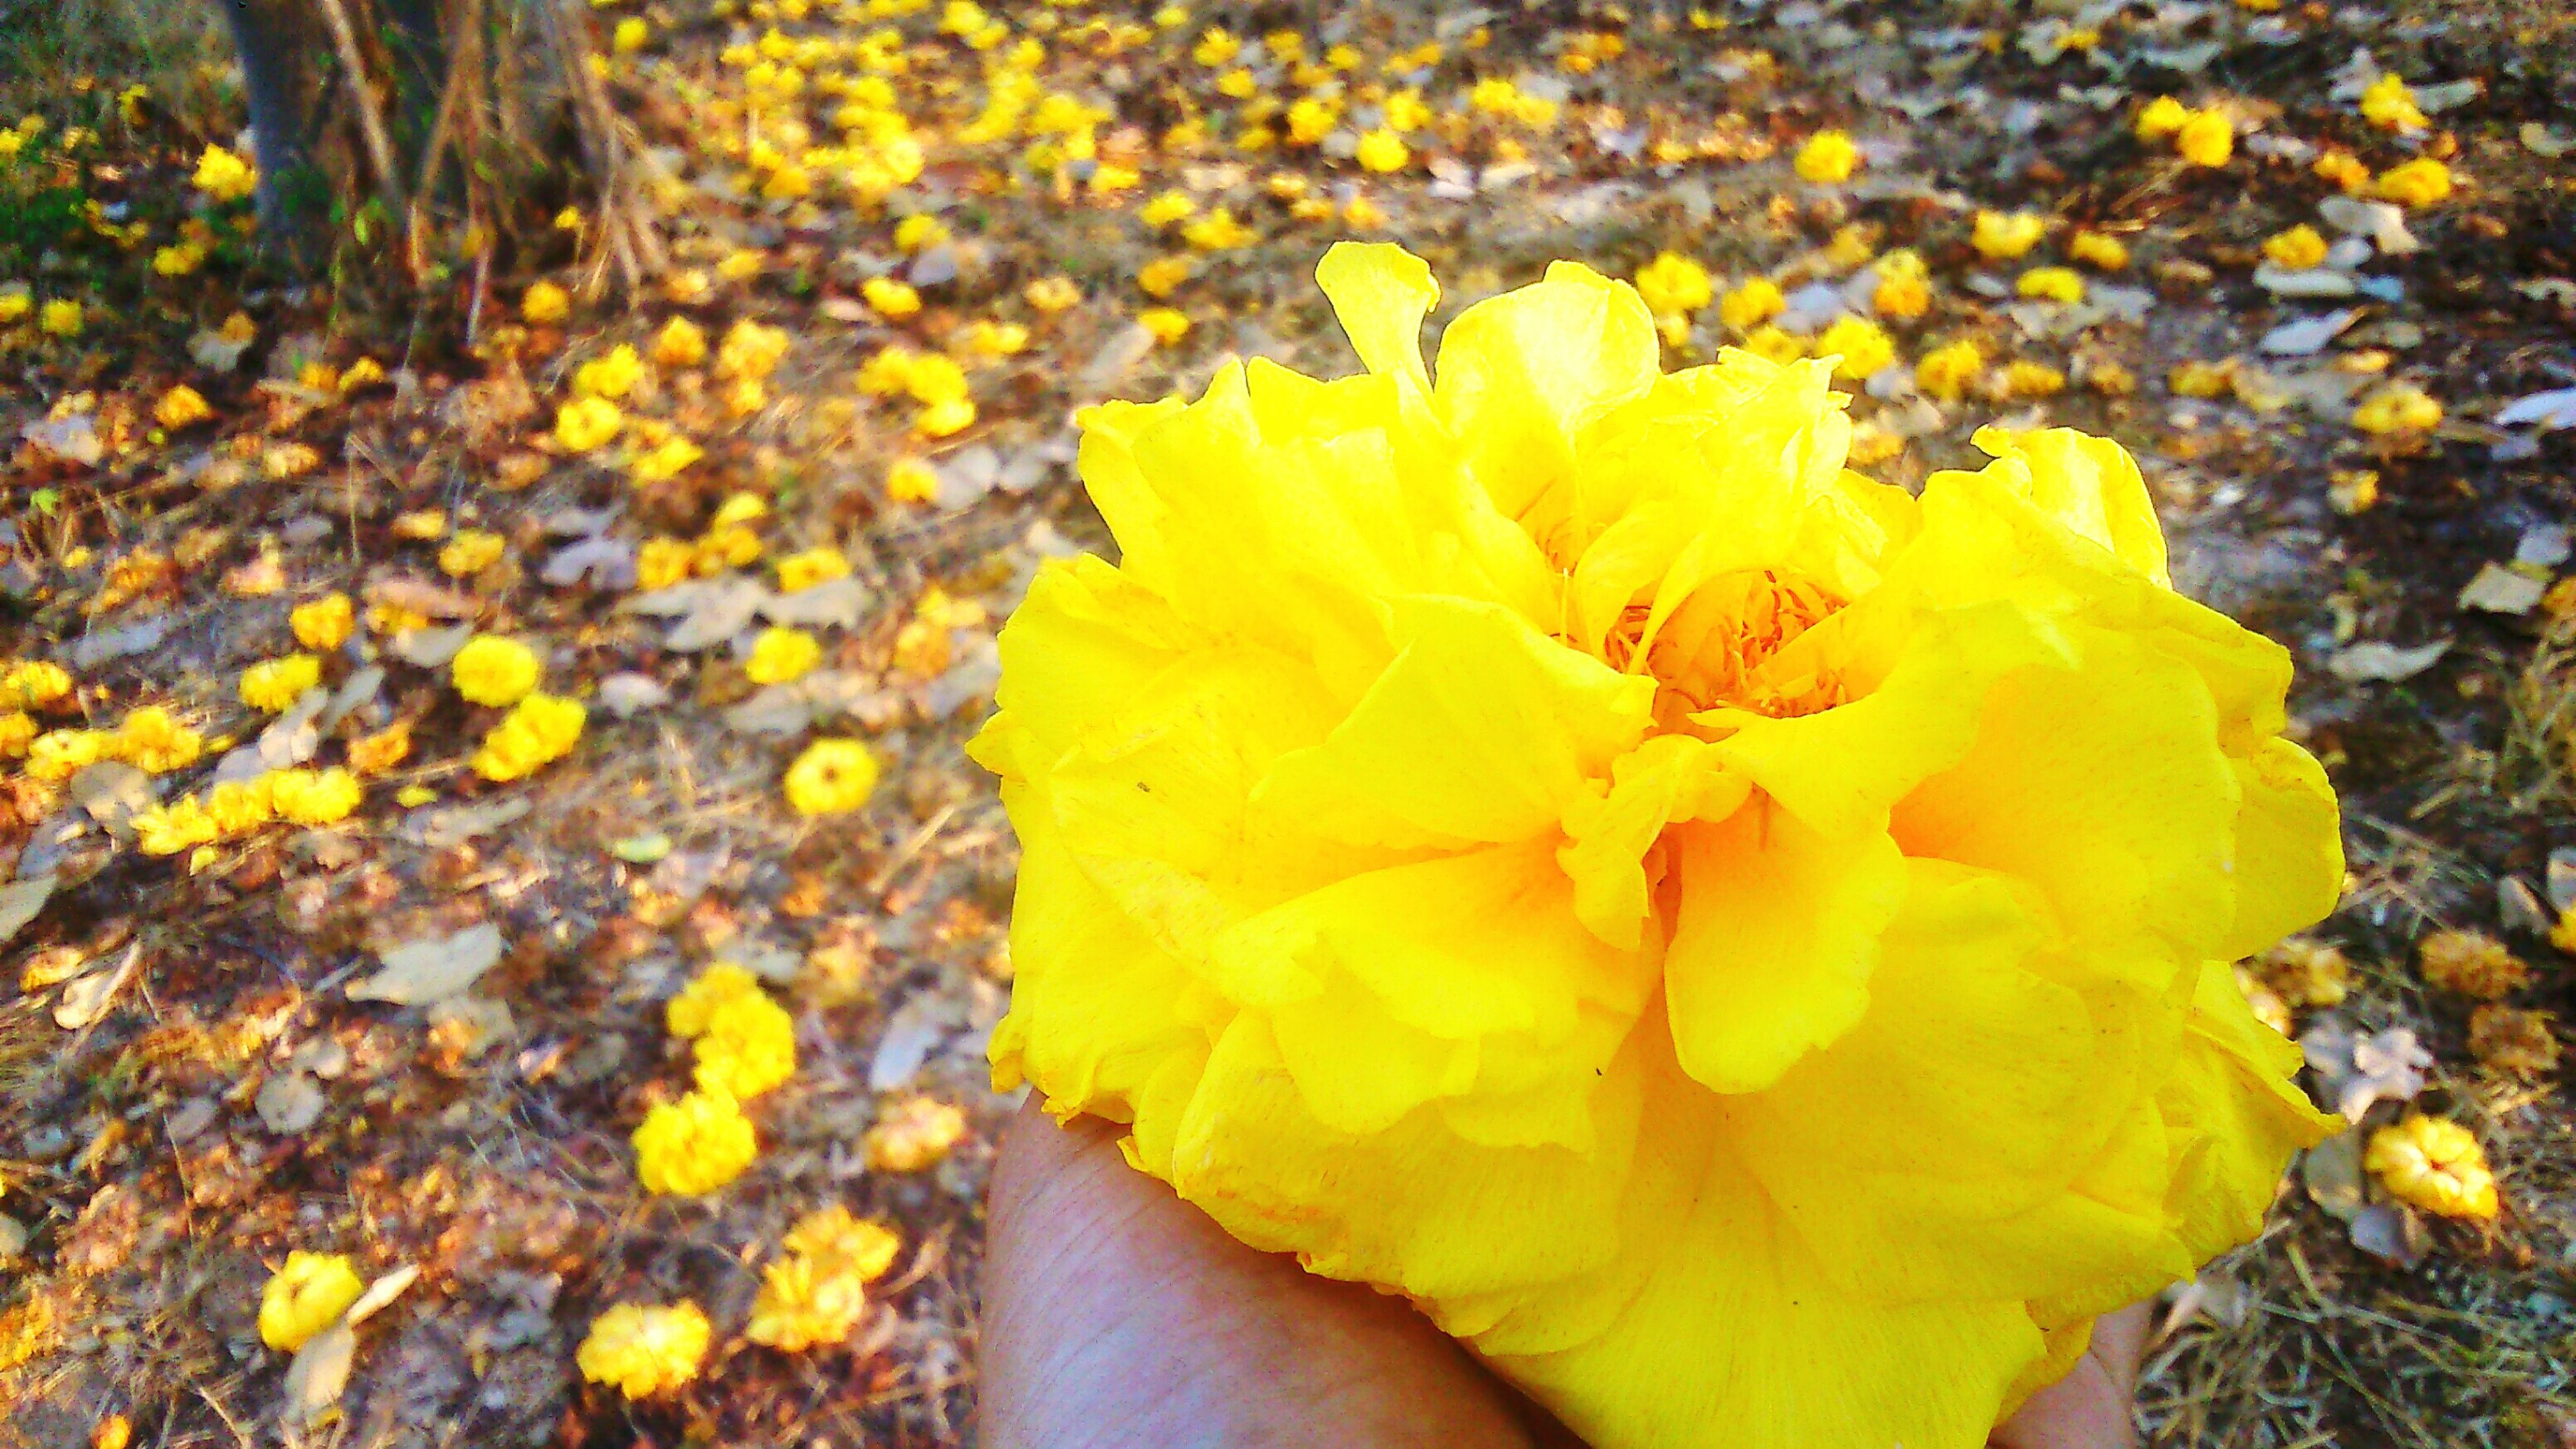 flower, yellow, fragility, petal, freshness, flower head, beauty in nature, growth, nature, high angle view, one person, blooming, field, leaf, plant, in bloom, season, outdoors, day, blossom